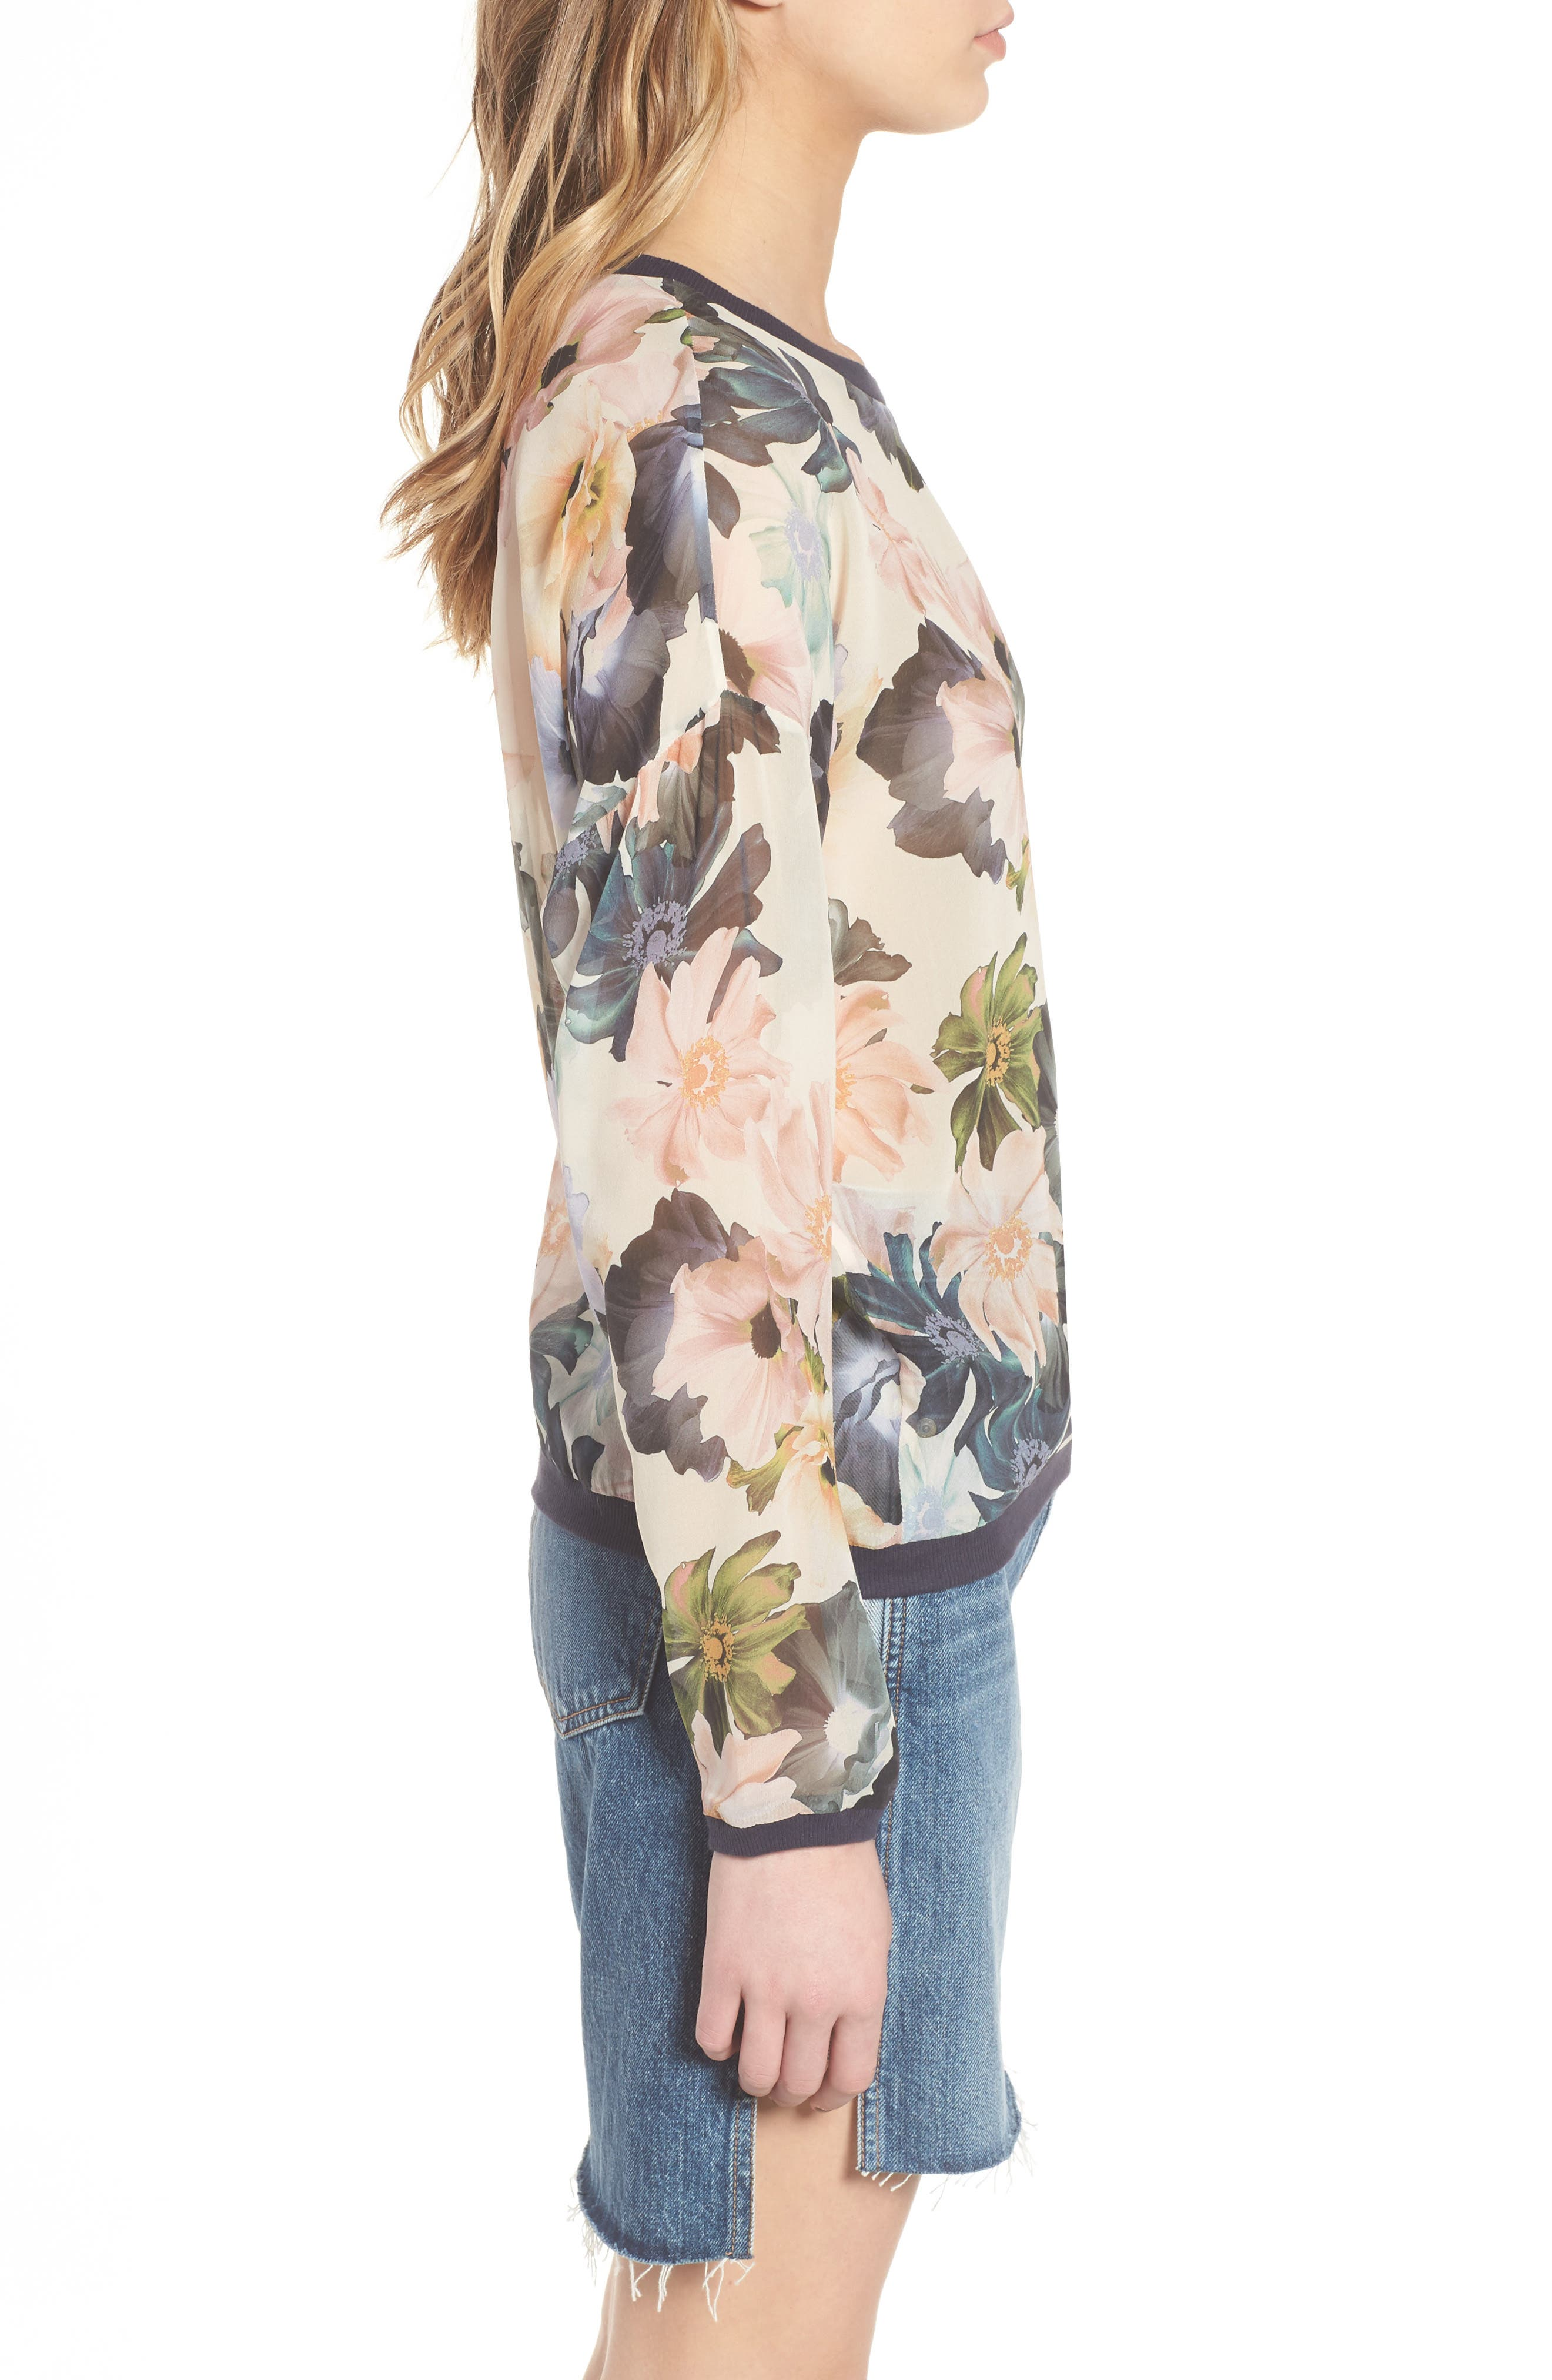 Georgette Sweatshirt,                             Alternate thumbnail 3, color,                             Desert Garden Print